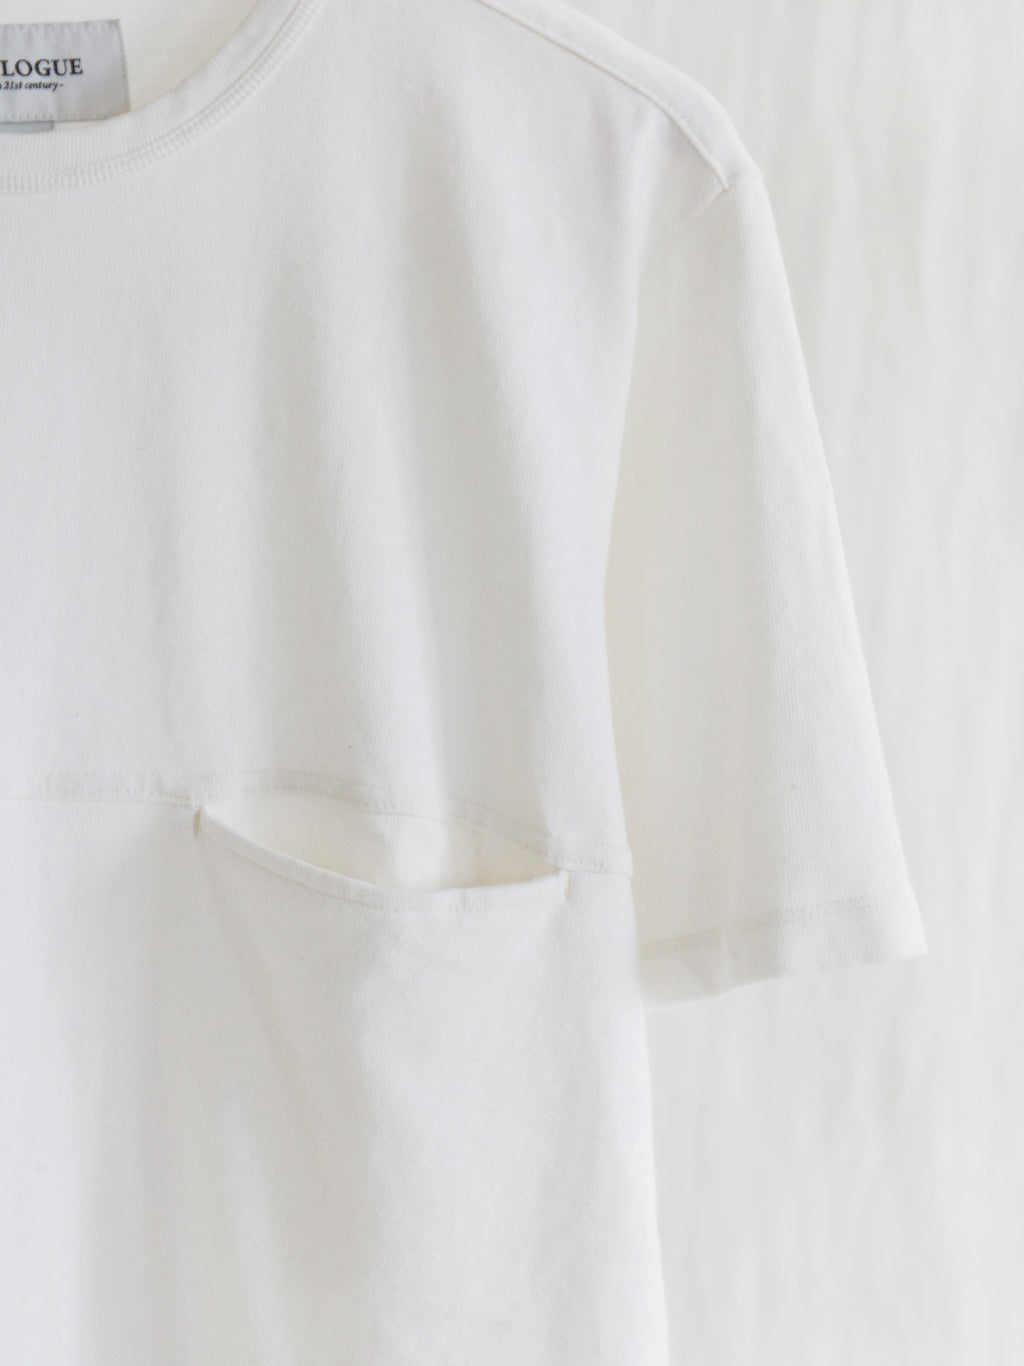 Namu Shop - Eastlogue One Pocket T-Shirt